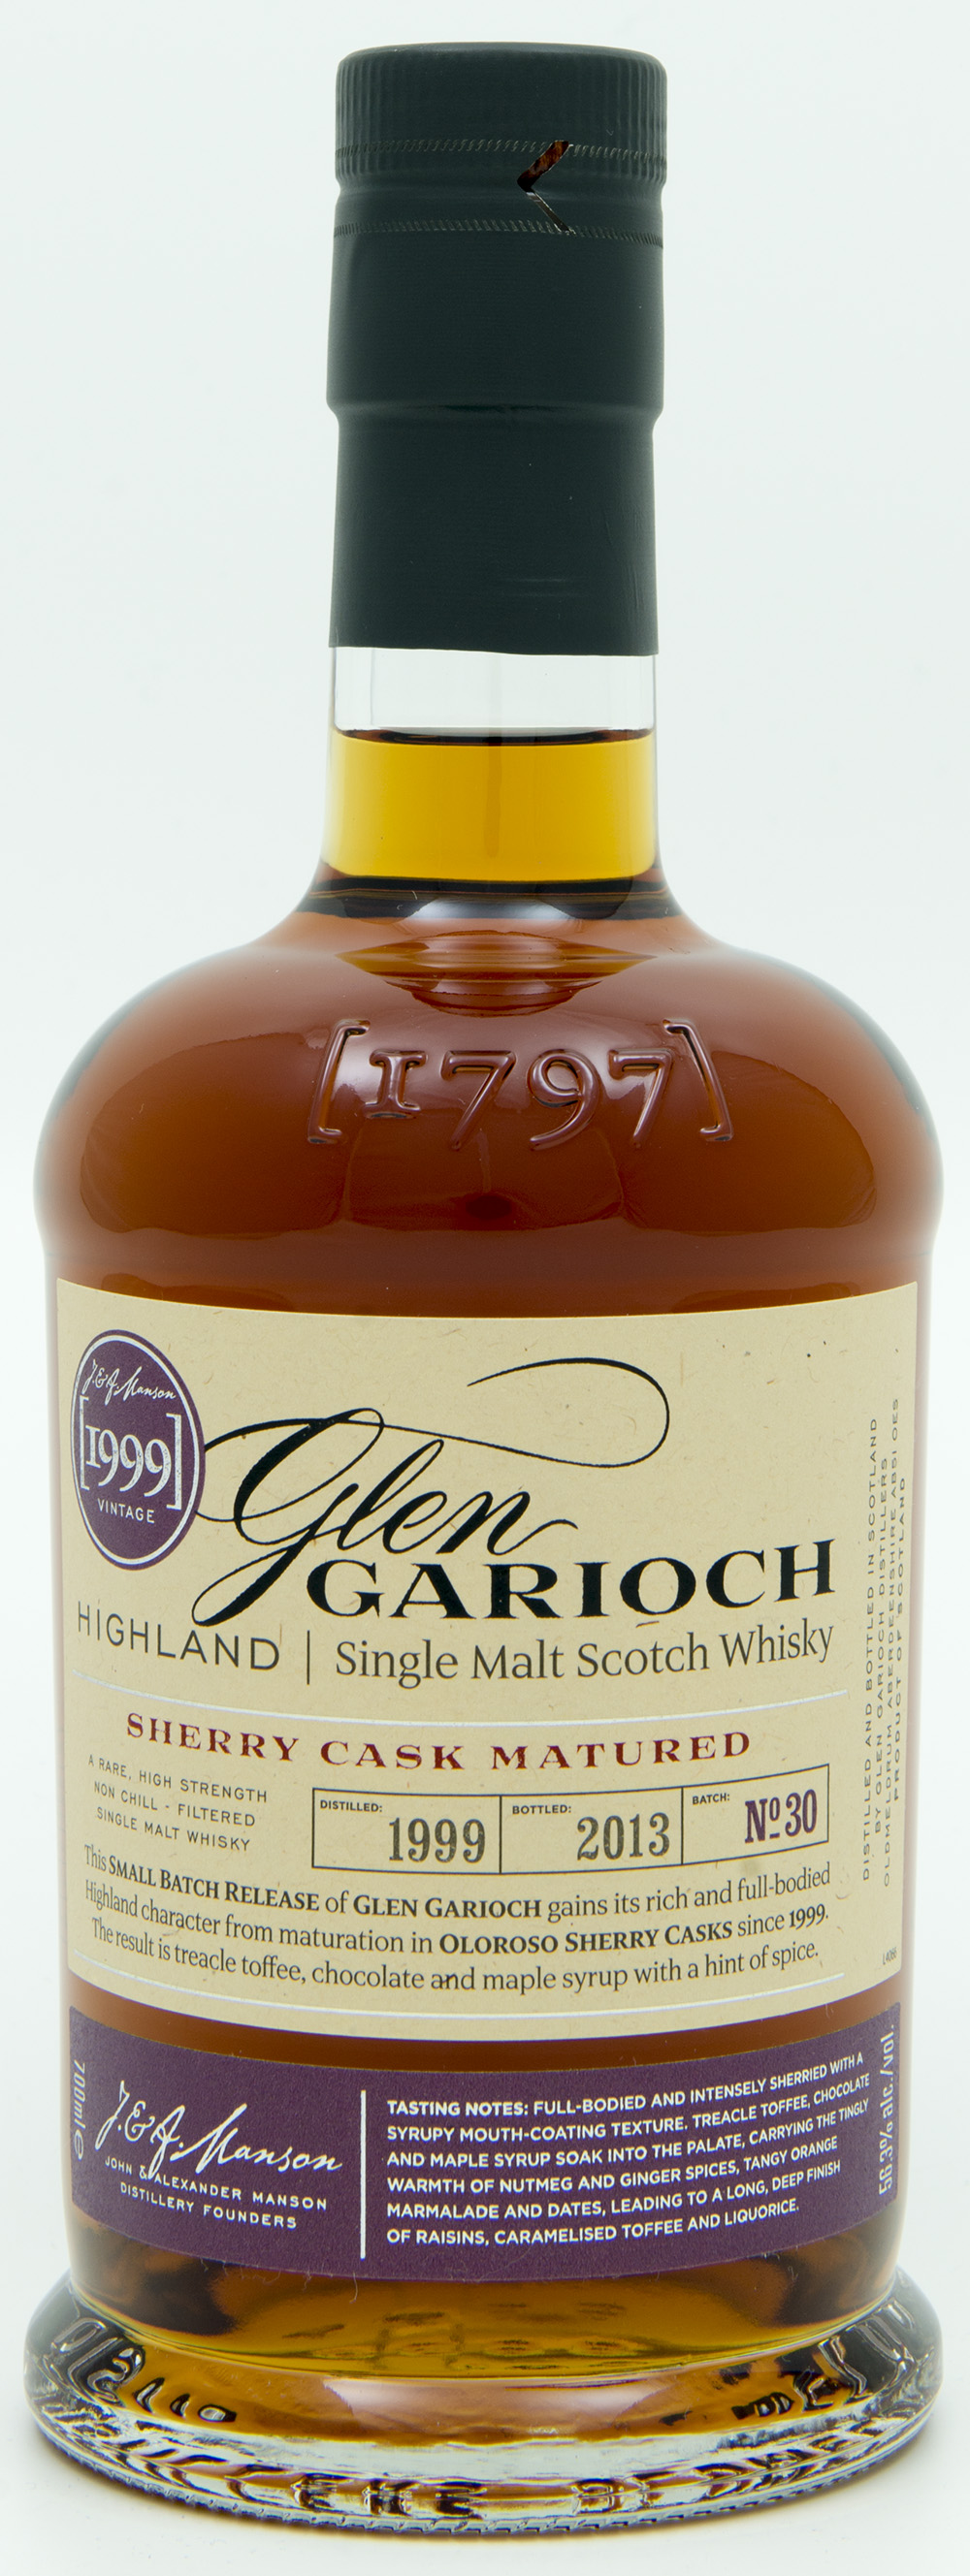 Billede: DSC_6558 GlenGarioch Batch 30 - Sherry Cask Matured 1999-2013 - bottle front.jpg